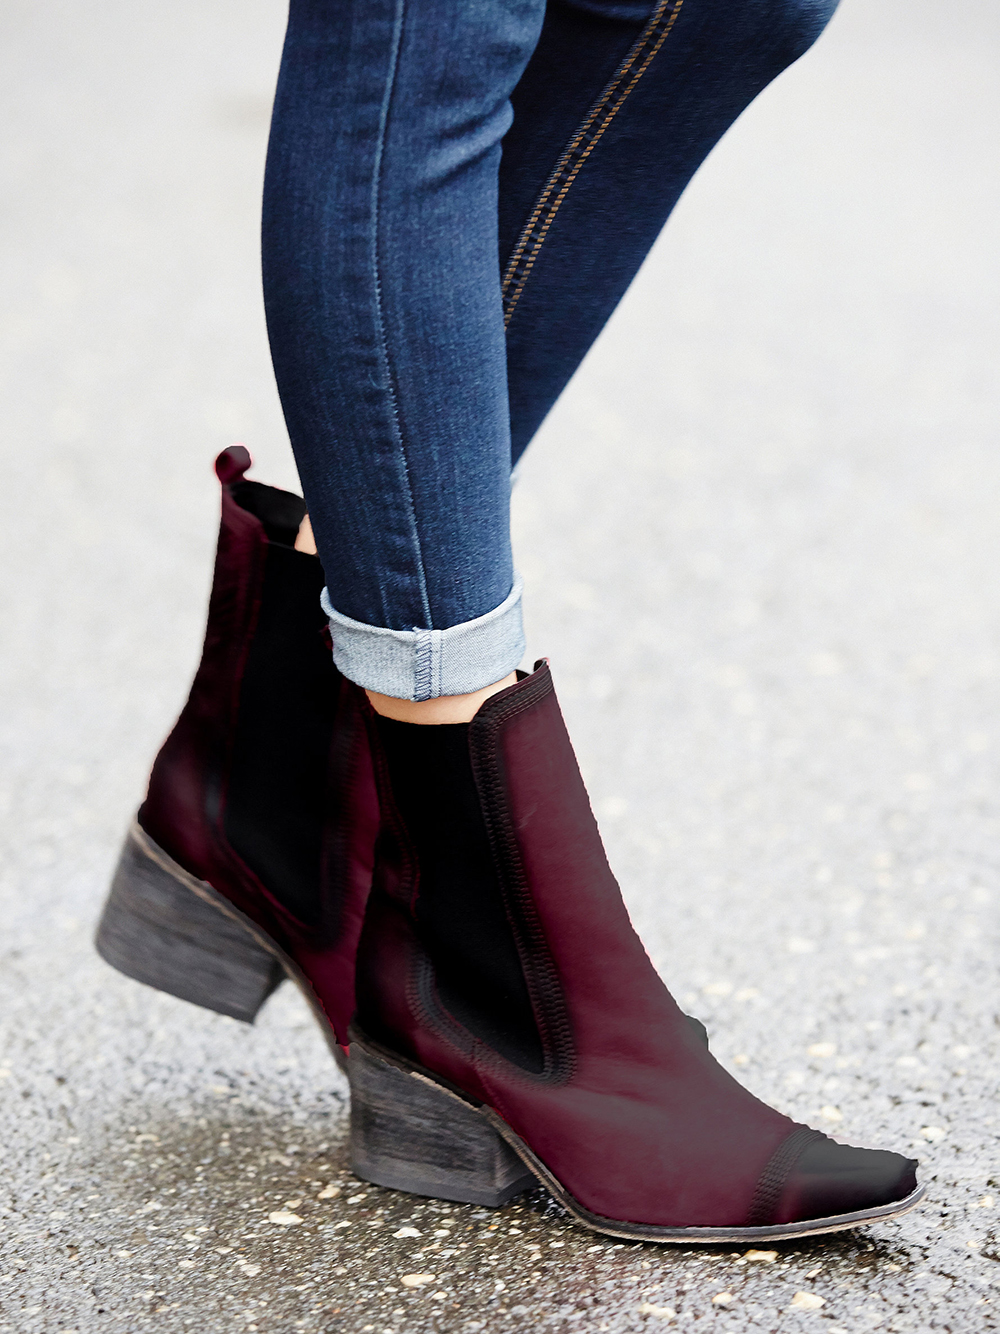 Western Inspired Boots - Free People Benson Chelsea Boot